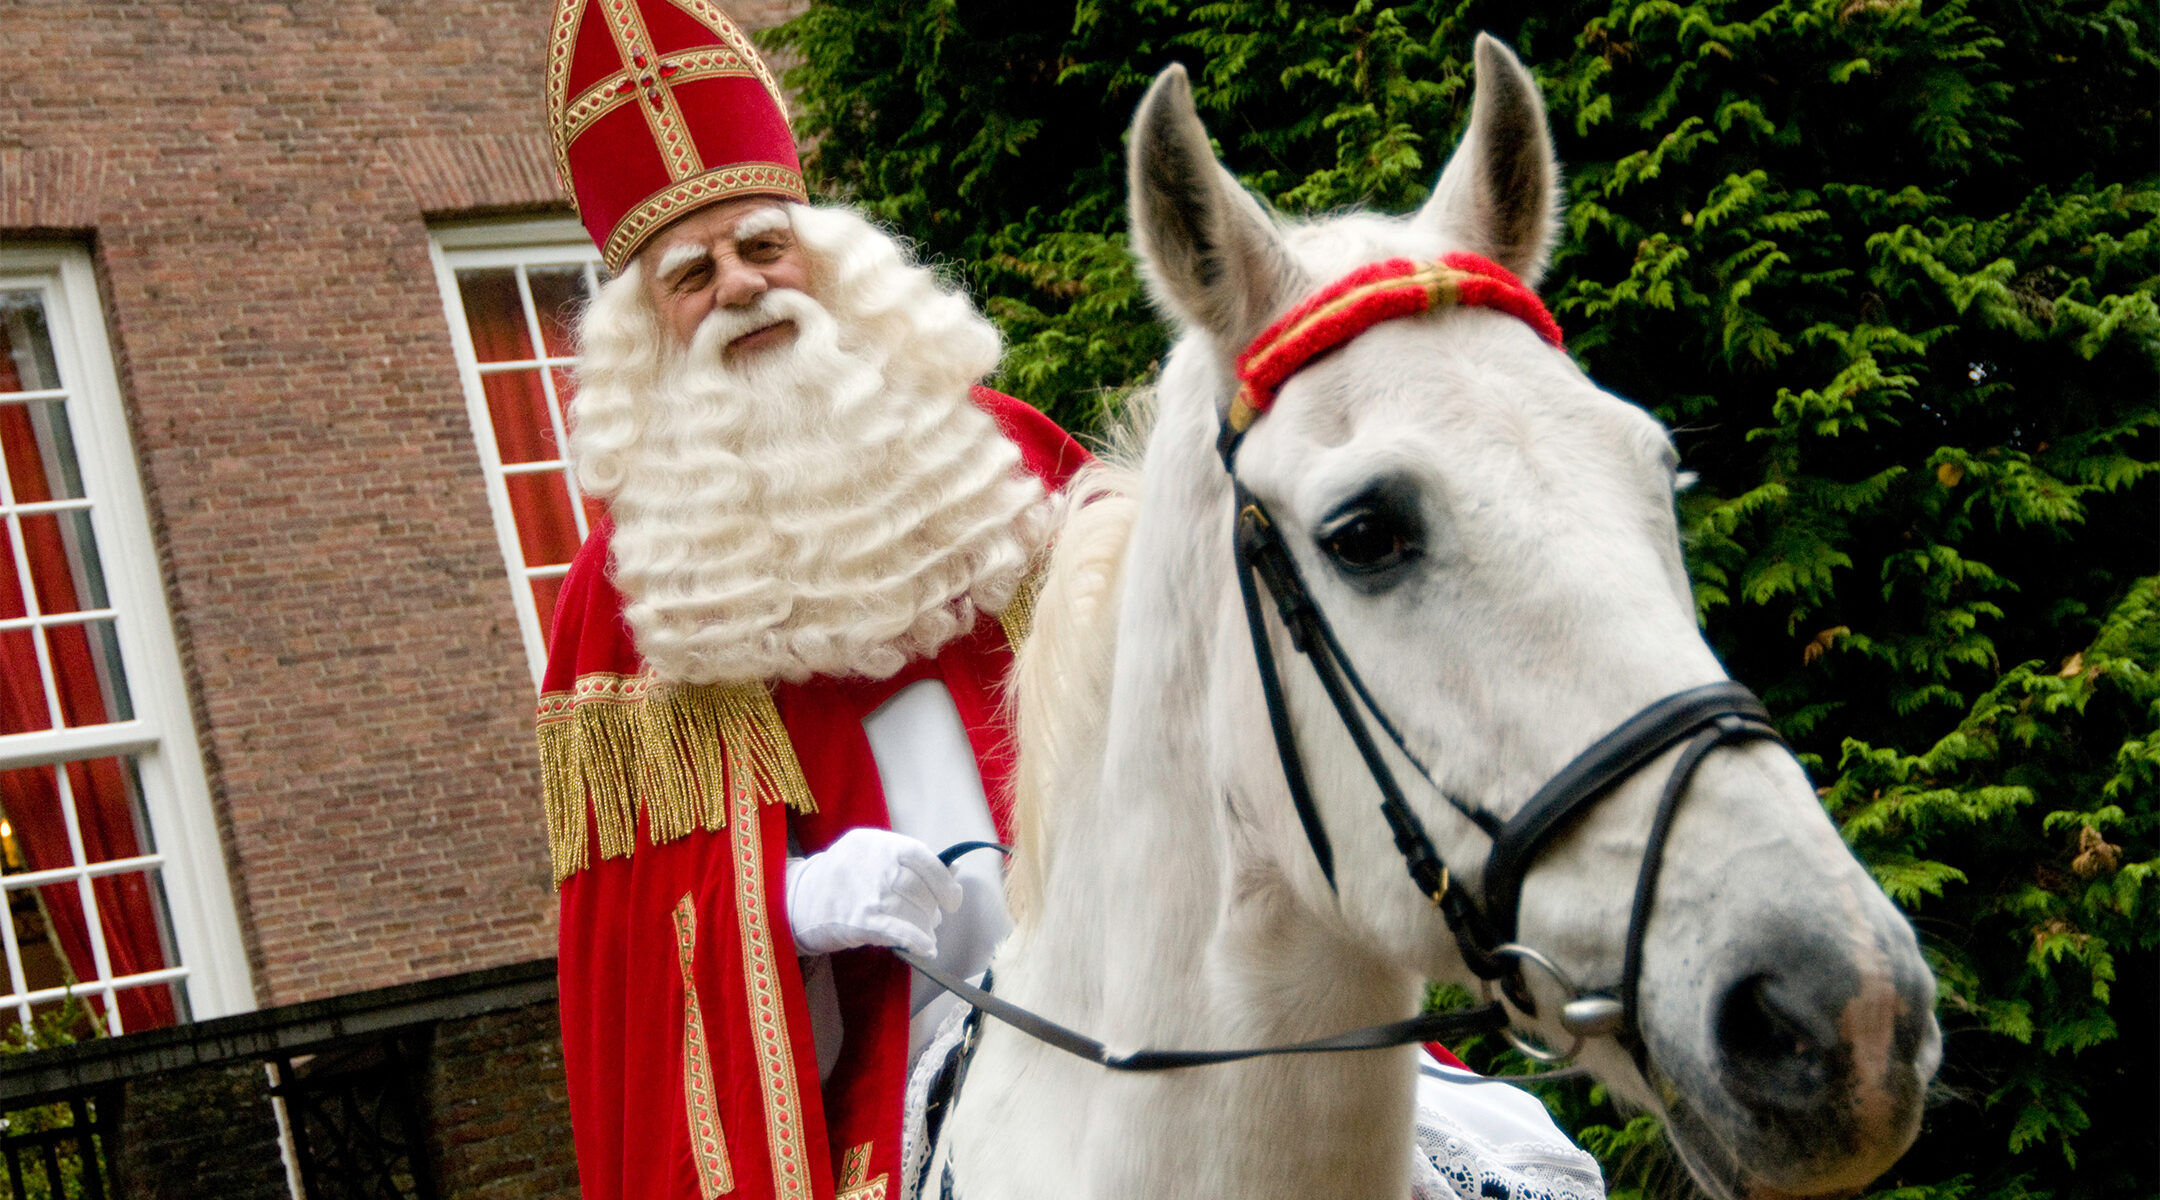 Bram van der Vlugt portrays Sinterklaas in Zeist, the Netherlands on Oct. 27, 2008. (Wikimedia Commons/R.F. (Roel) Jorna)